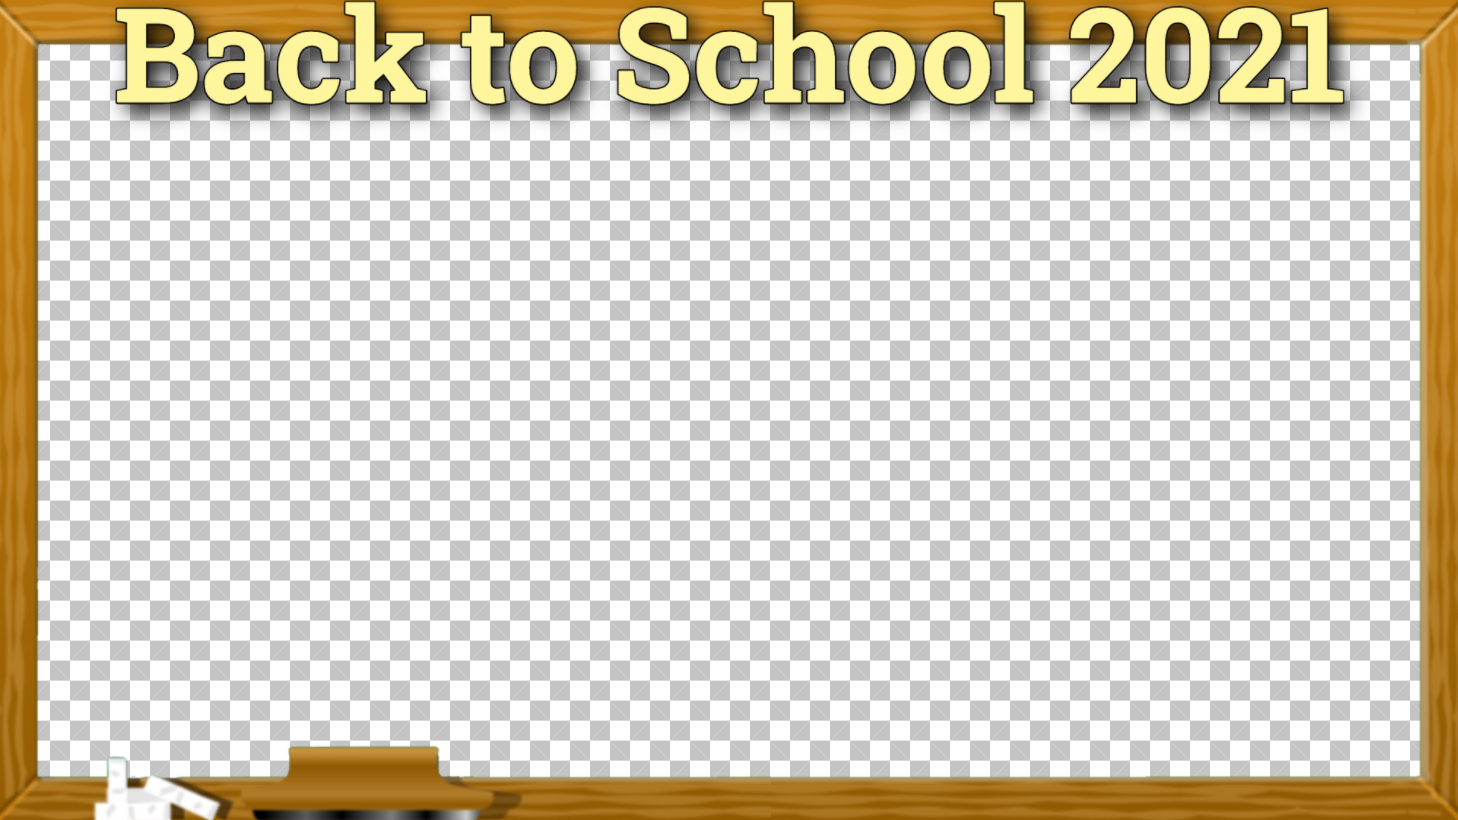 """A 16:9 photo frame with a chalkboard design and """"Back to School 2021"""" displayed."""